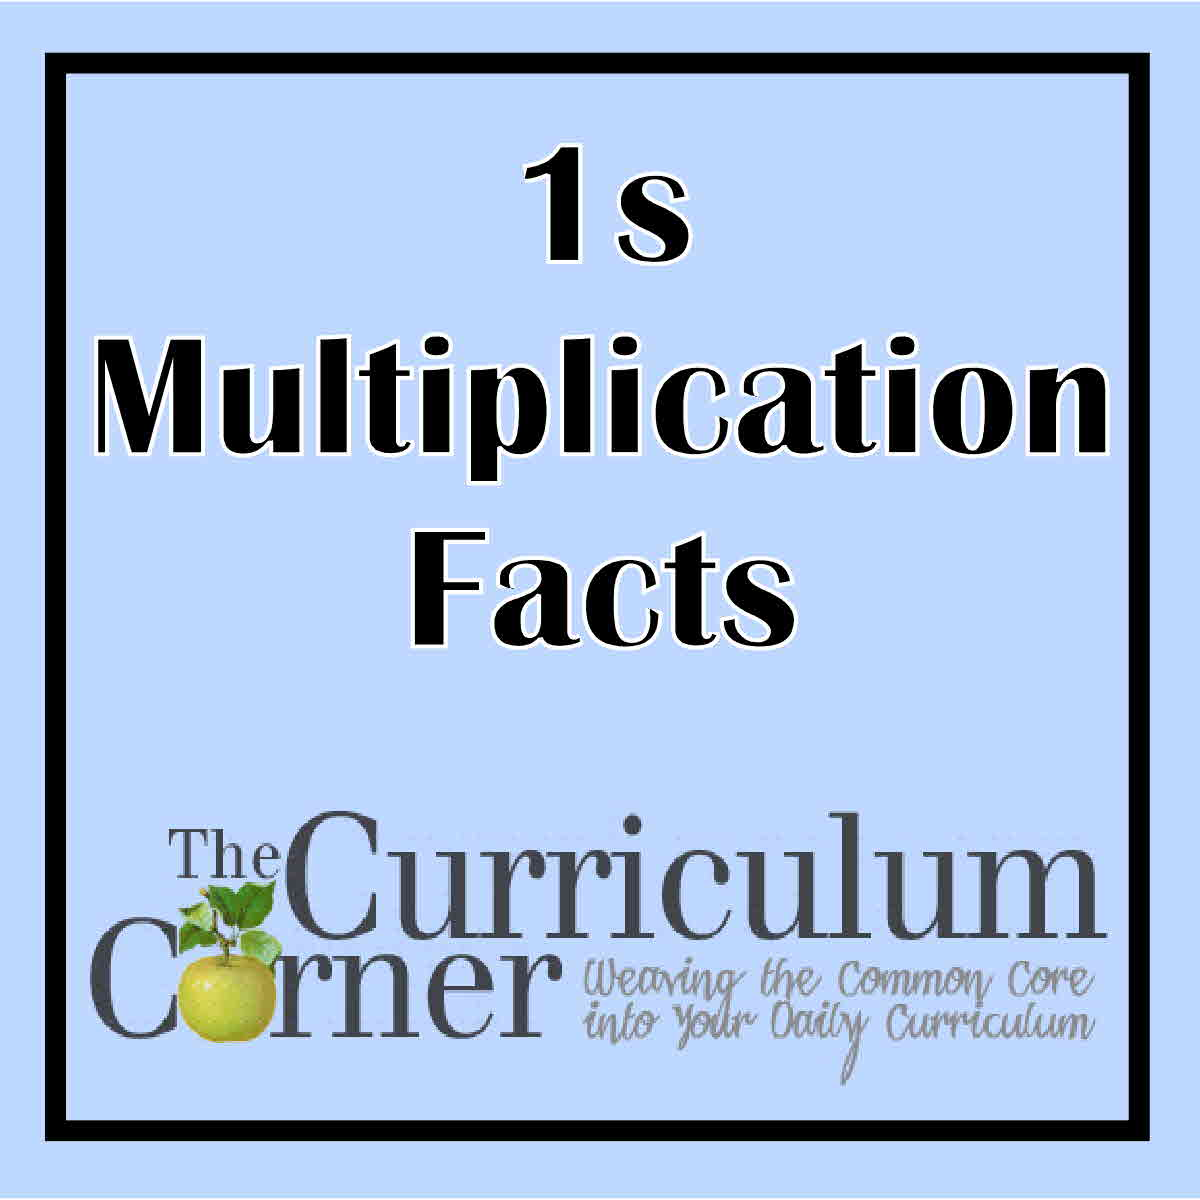 1s Multiplication Facts